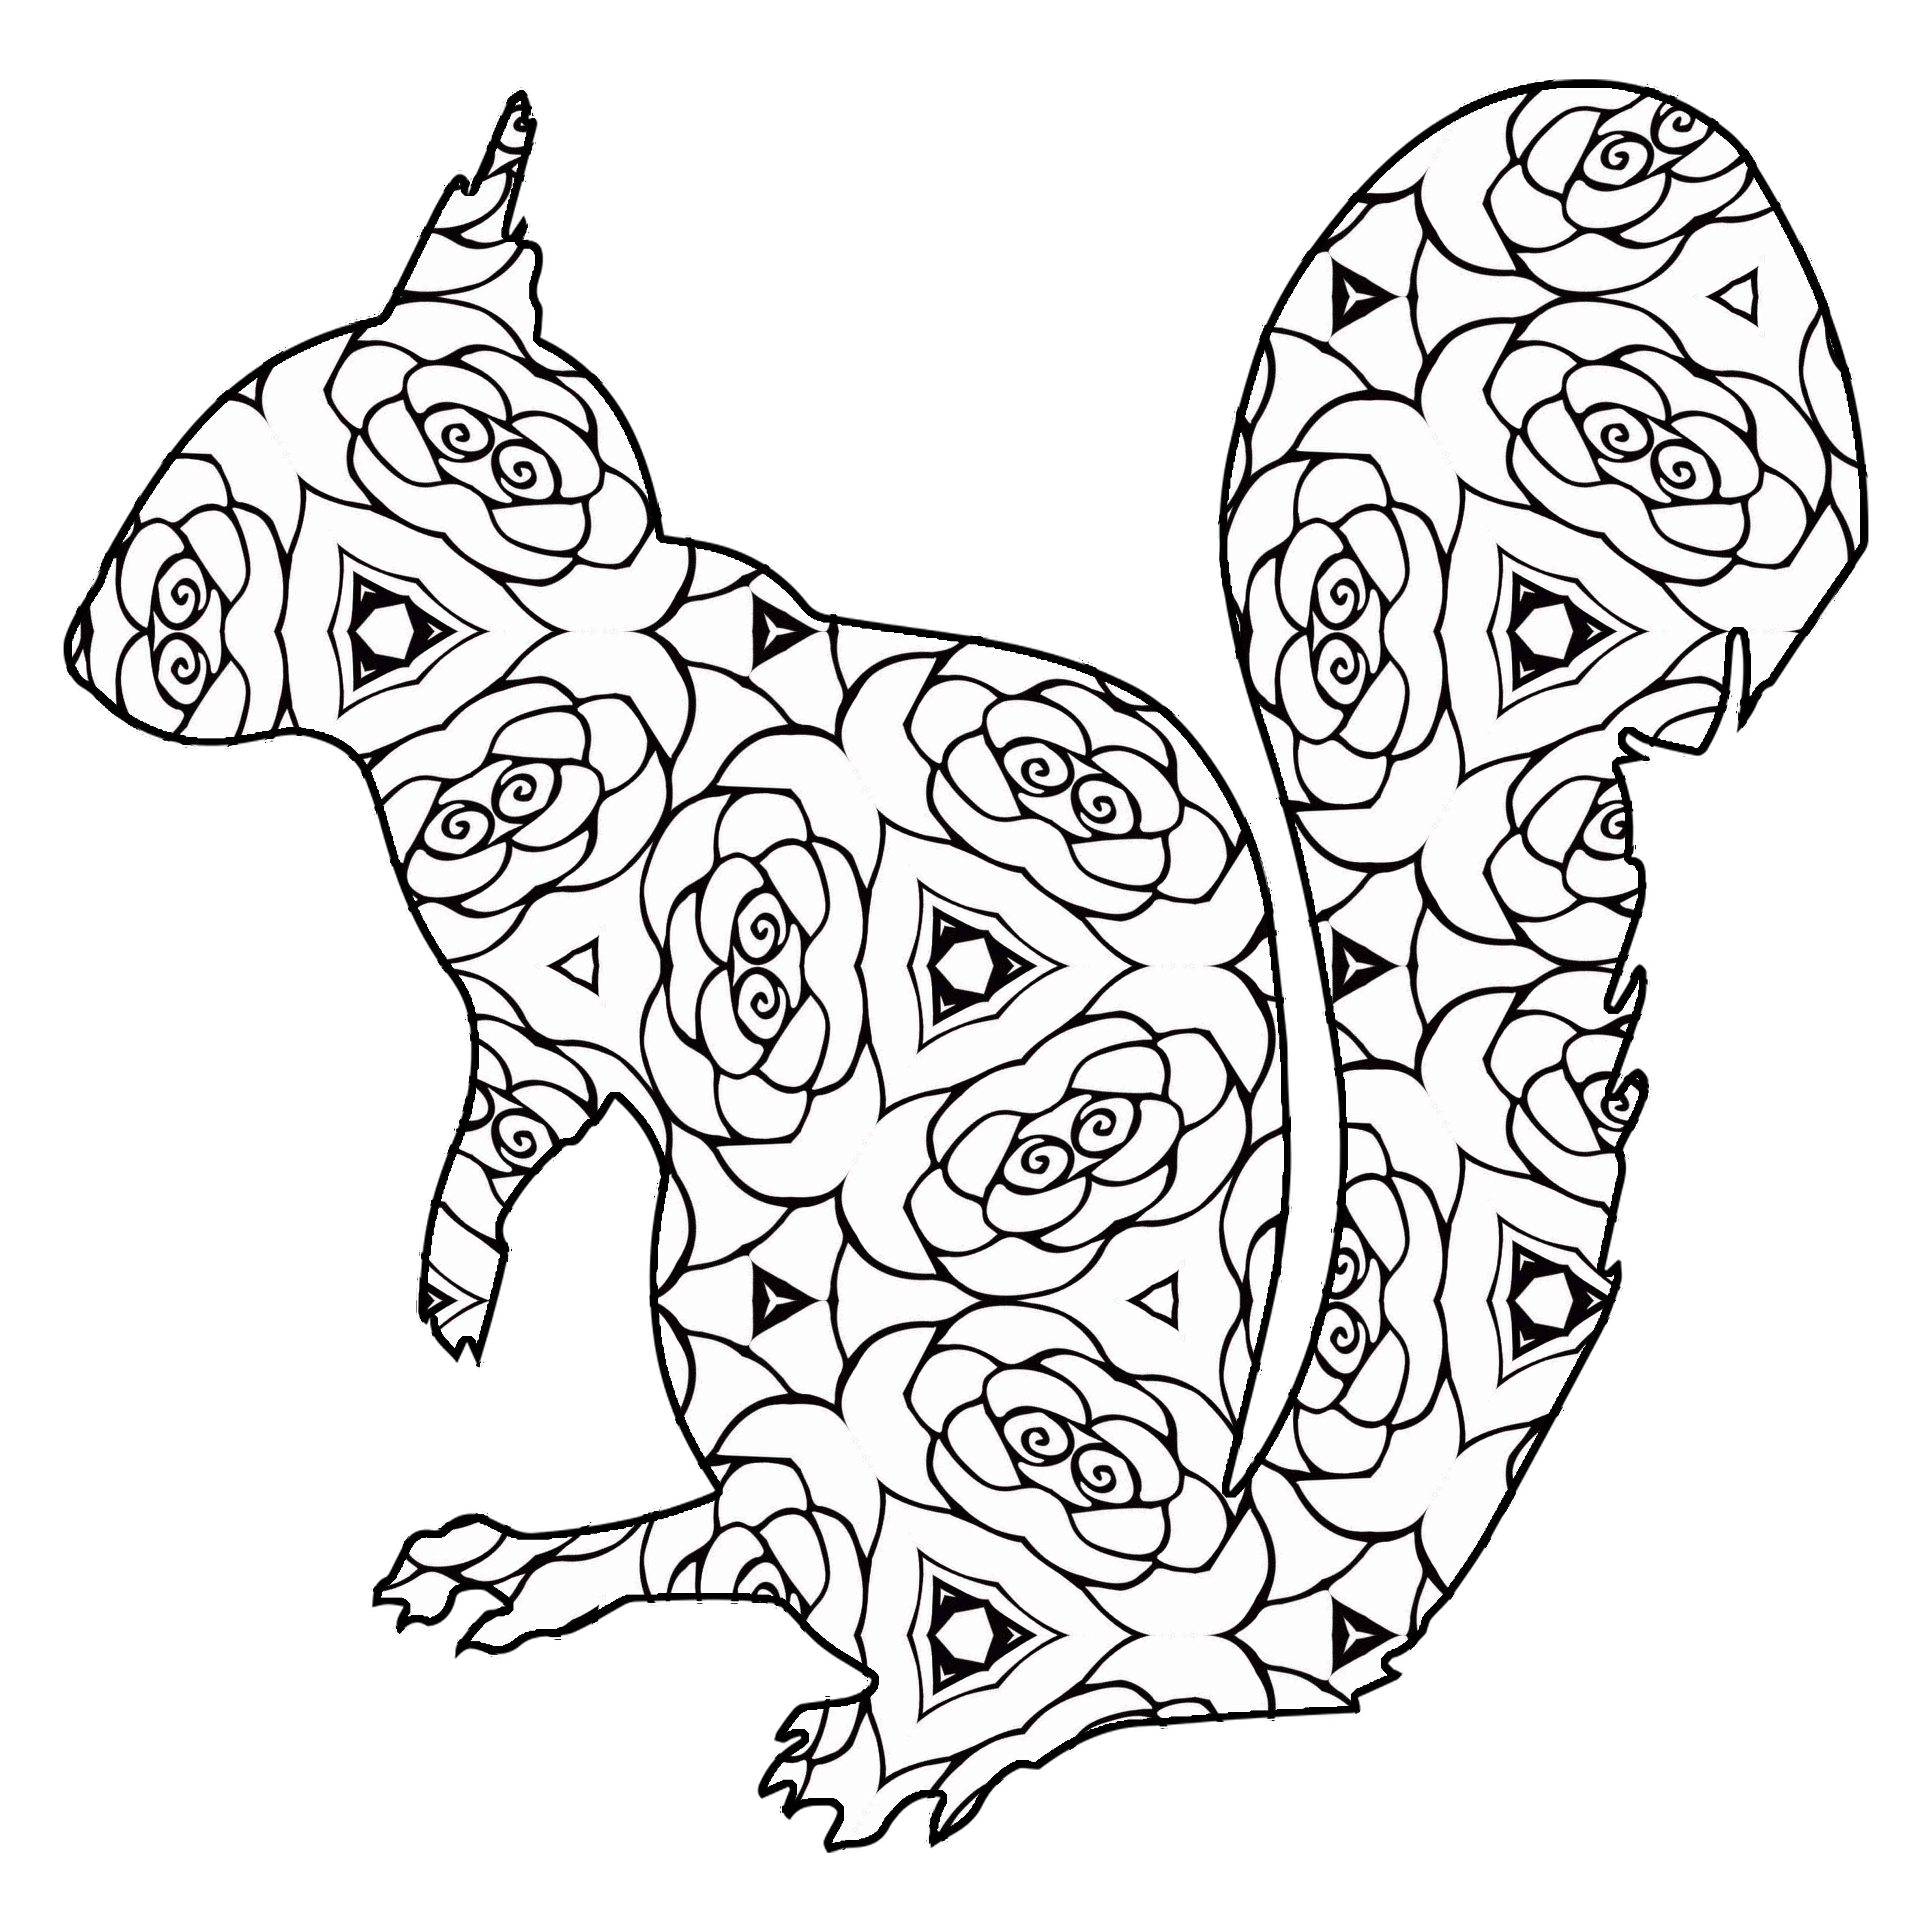 30 Free Printable Geometric Animal Coloring Pages | The ...